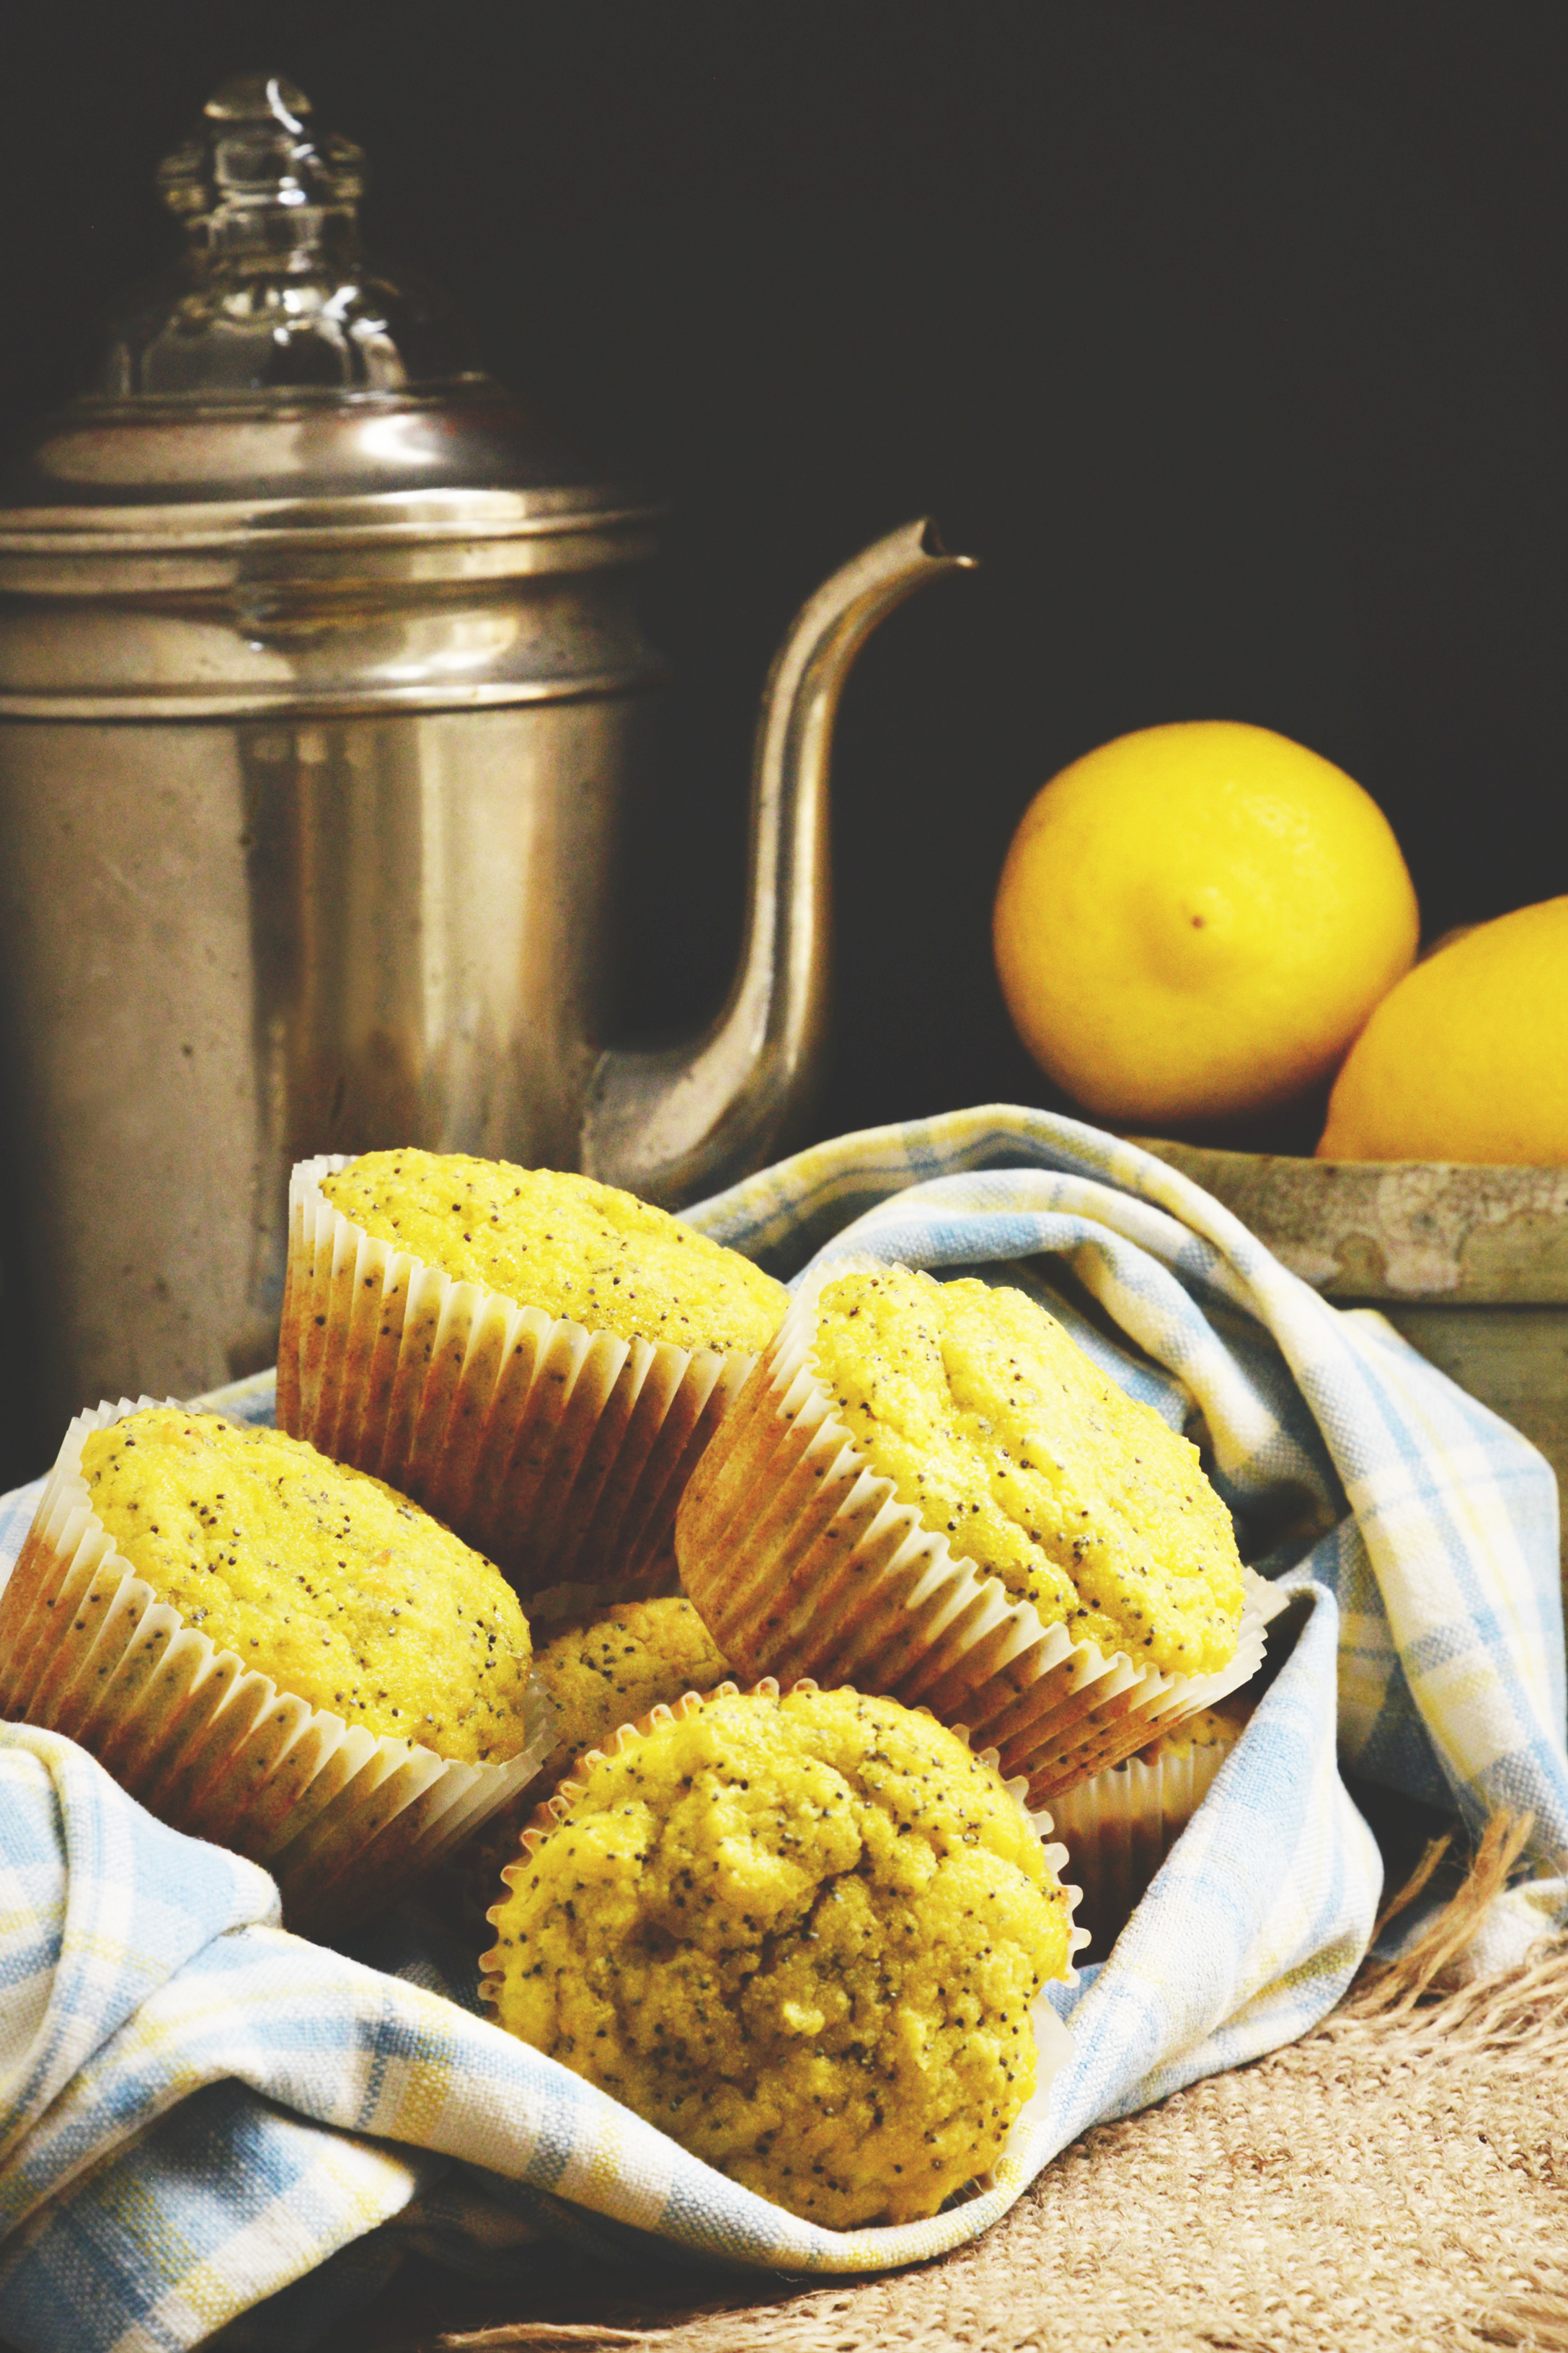 Lemon-Poppy-Seed-Muffins-staying warm in a towel.